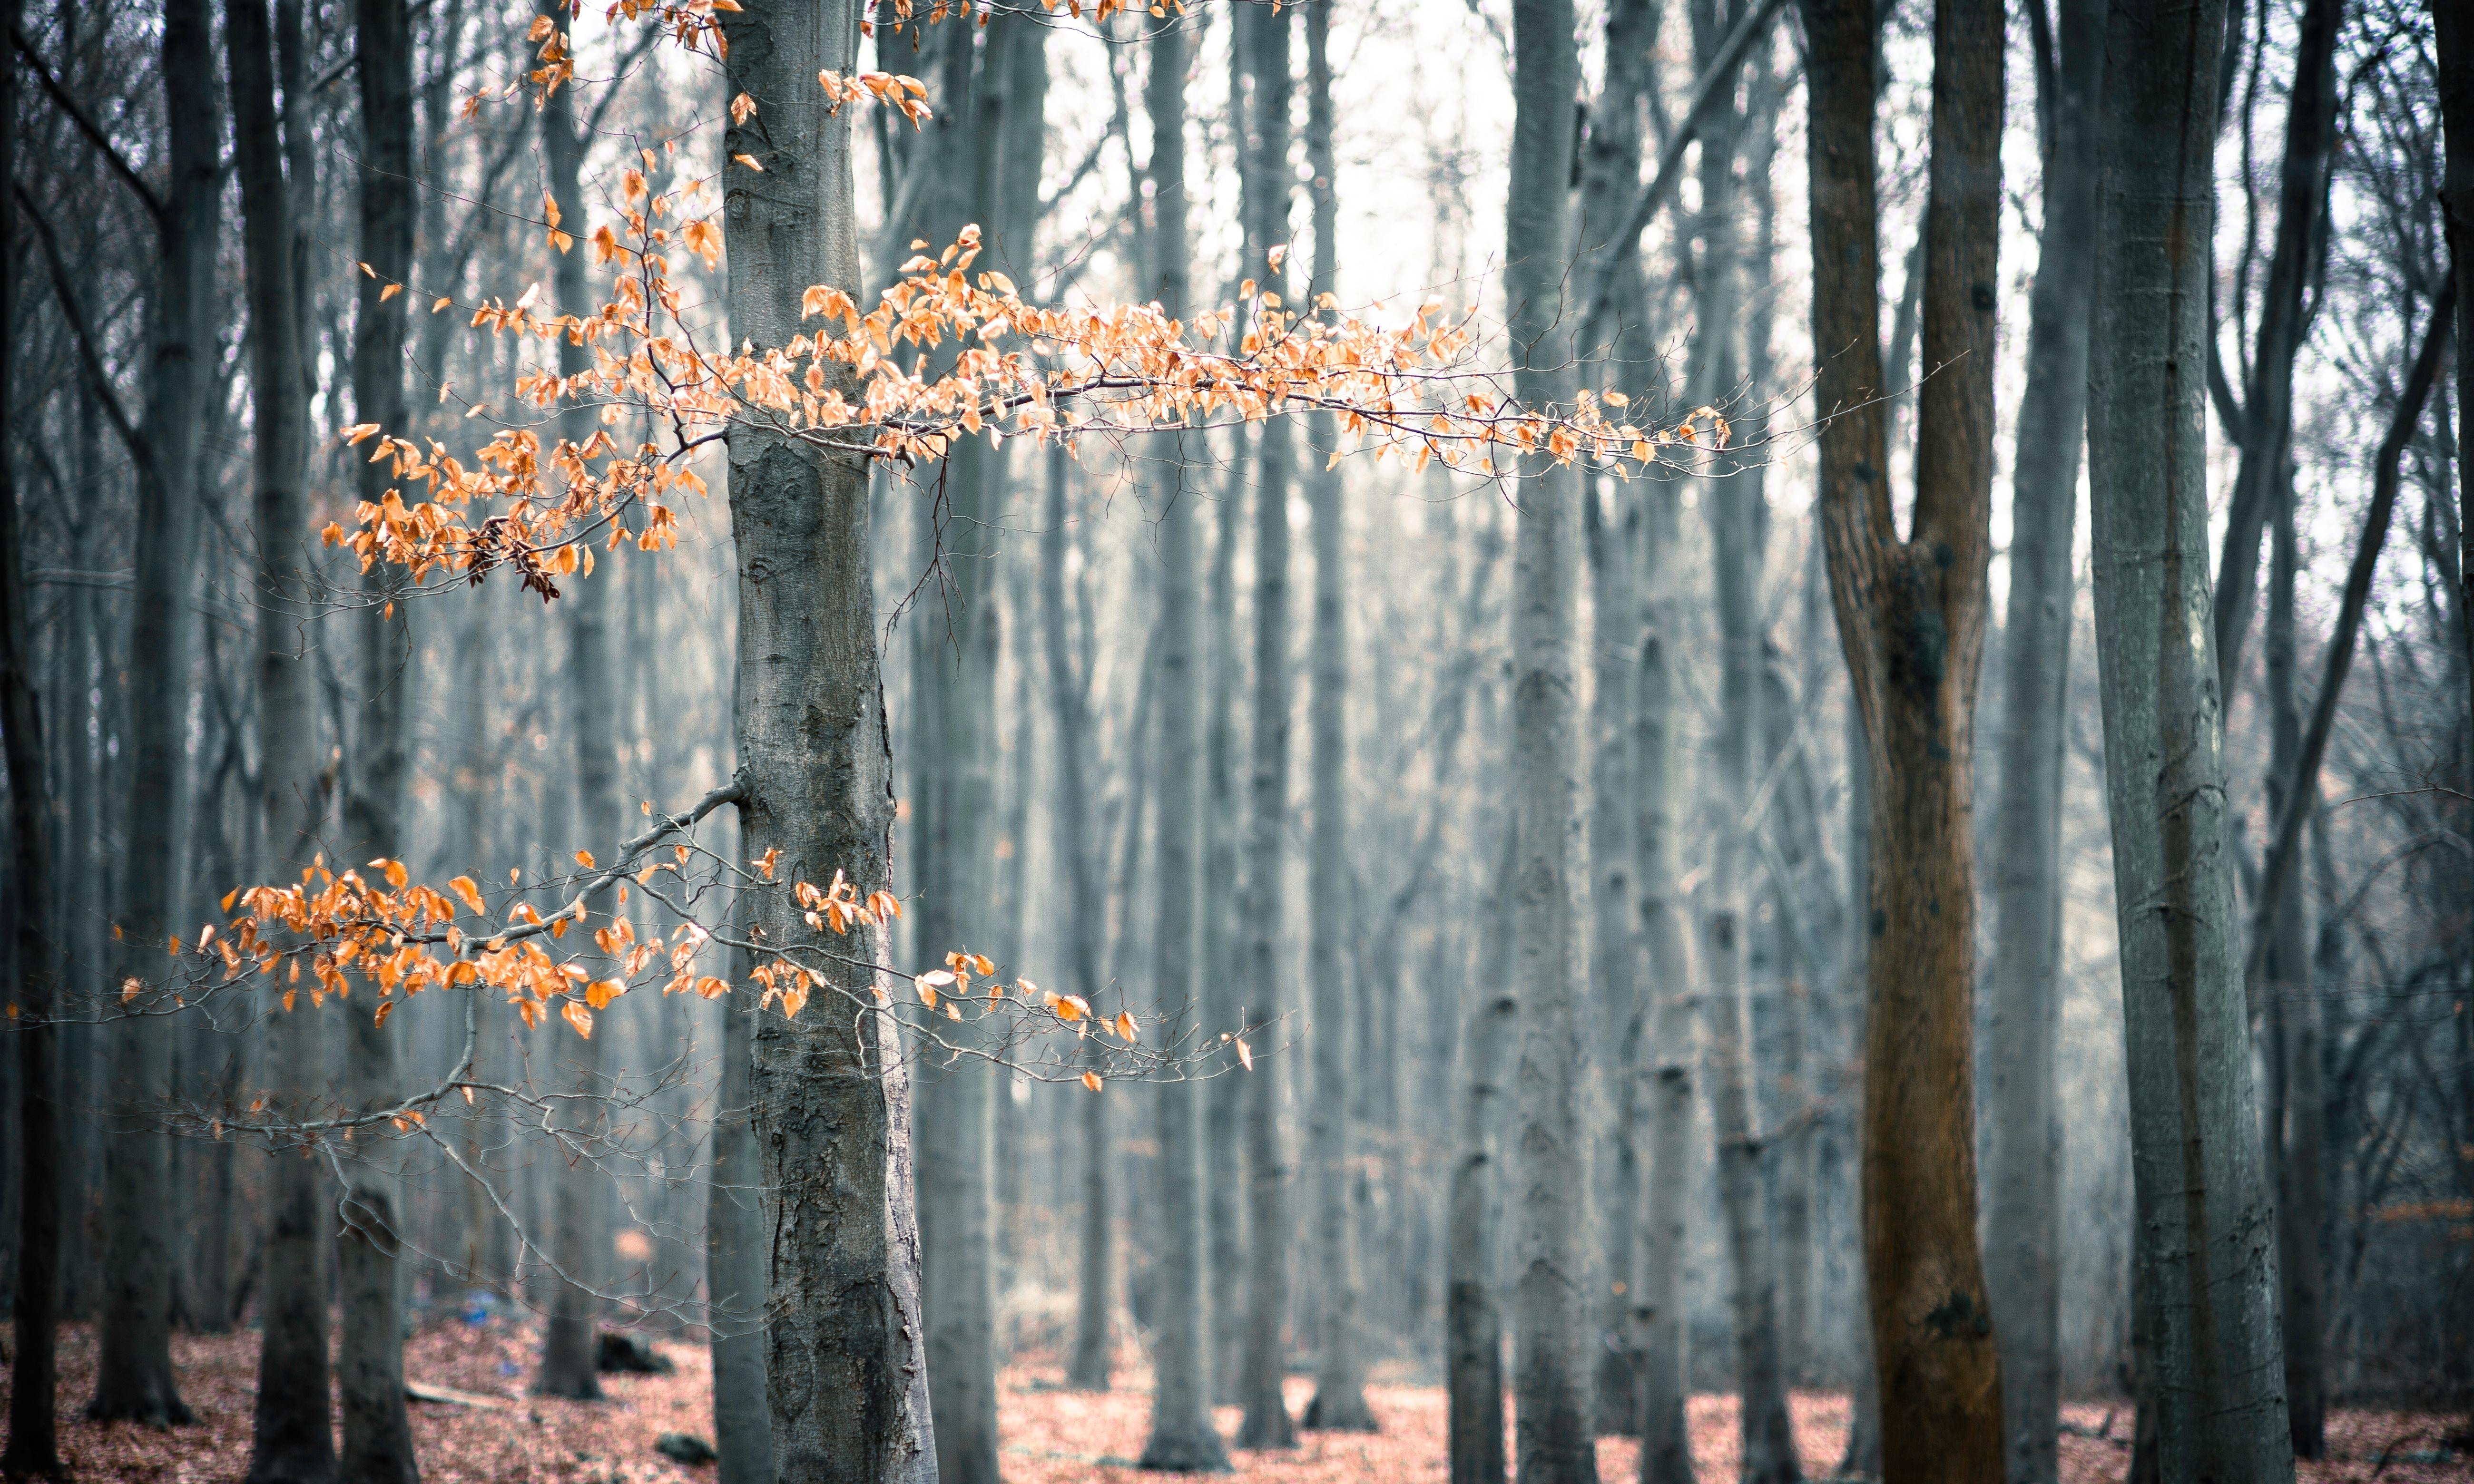 The Guardian view on the climate emergency: forests can help to save us